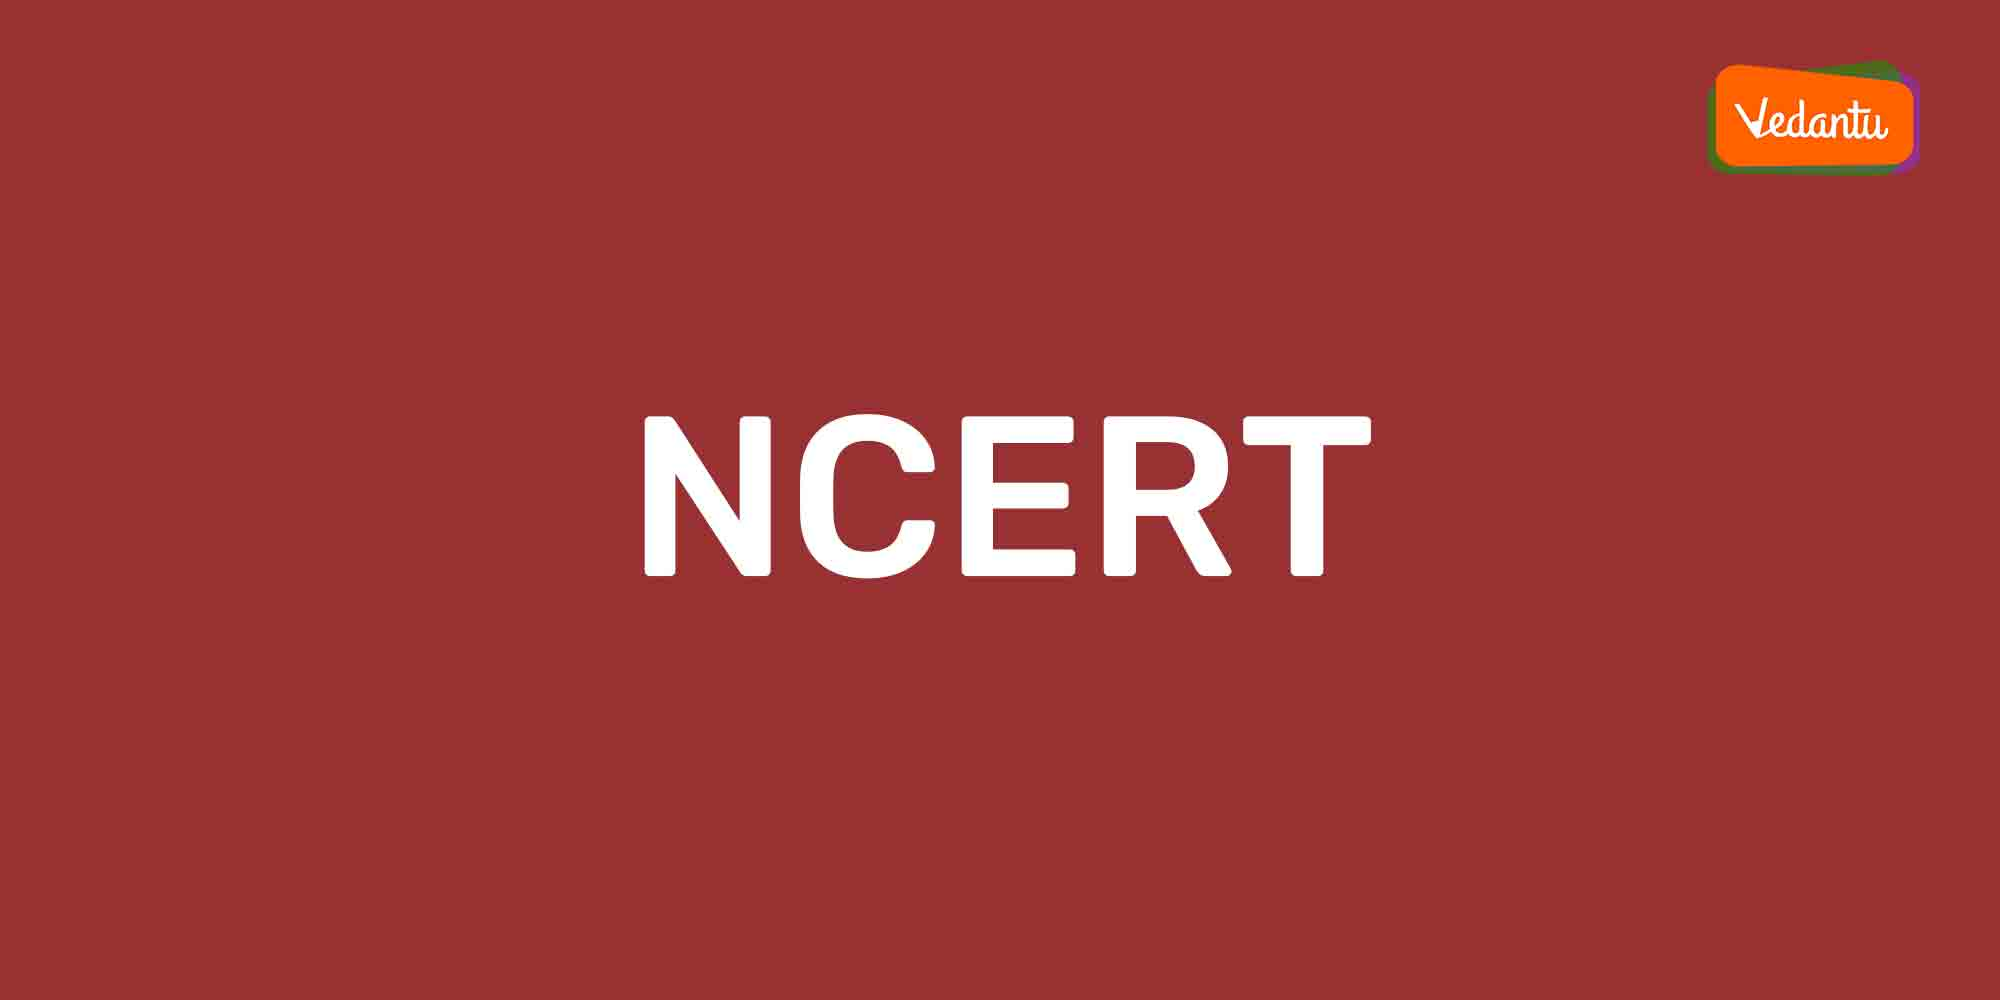 How to Use NCERT Maths Solutions Effectively